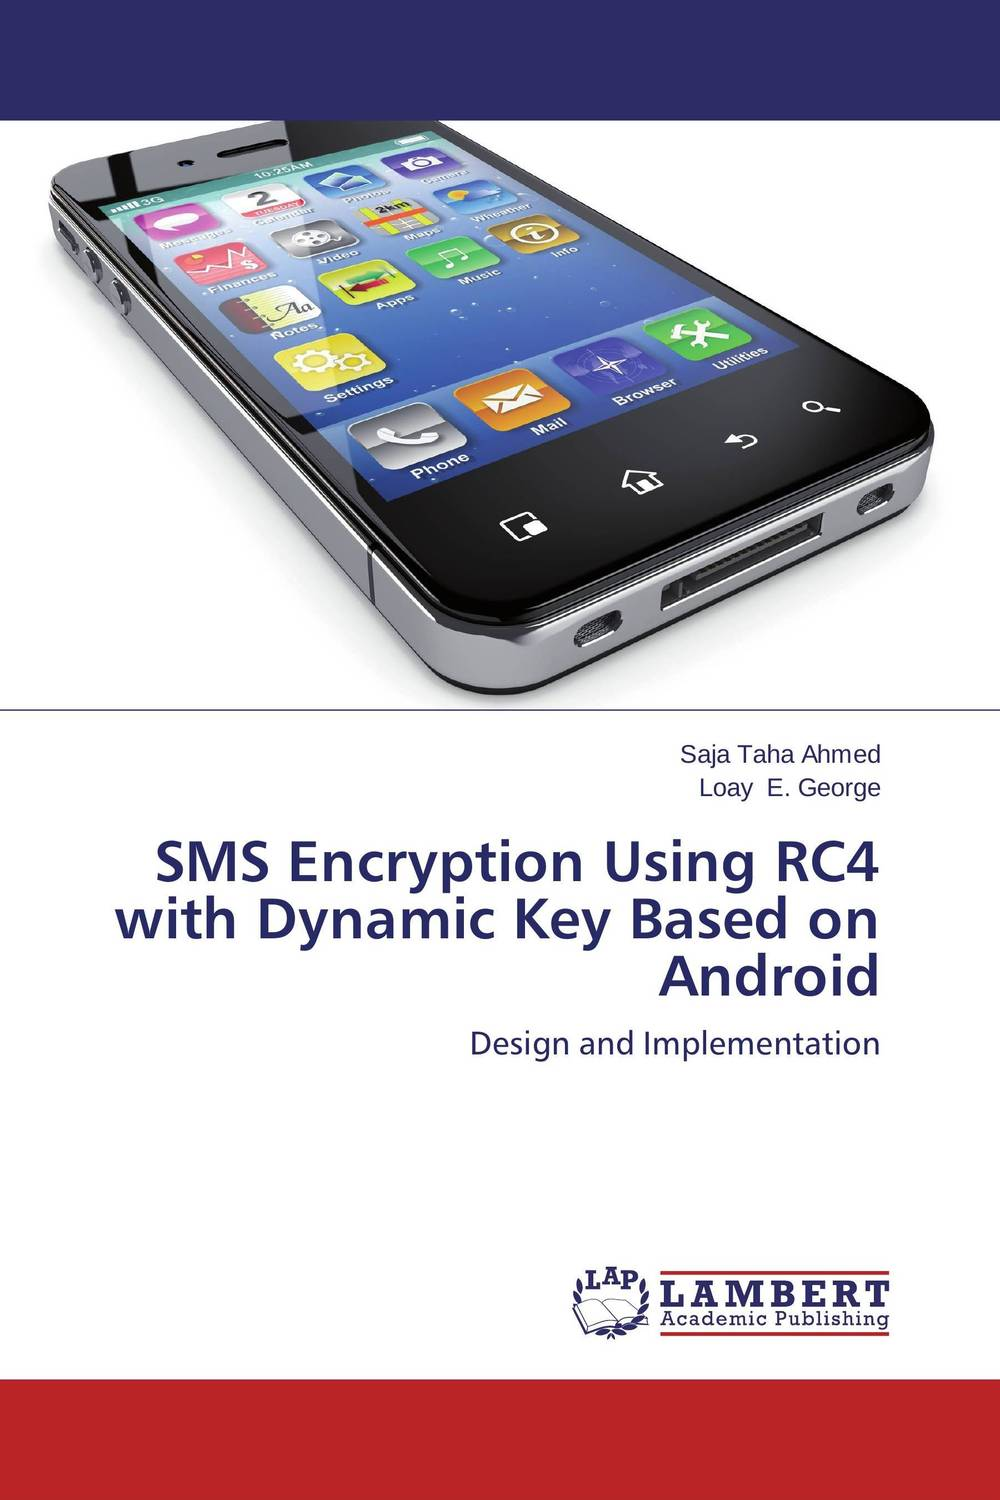 SMS Encryption Using RC4 with Dynamic Key Based on Android clustering information entities based on statistical methods